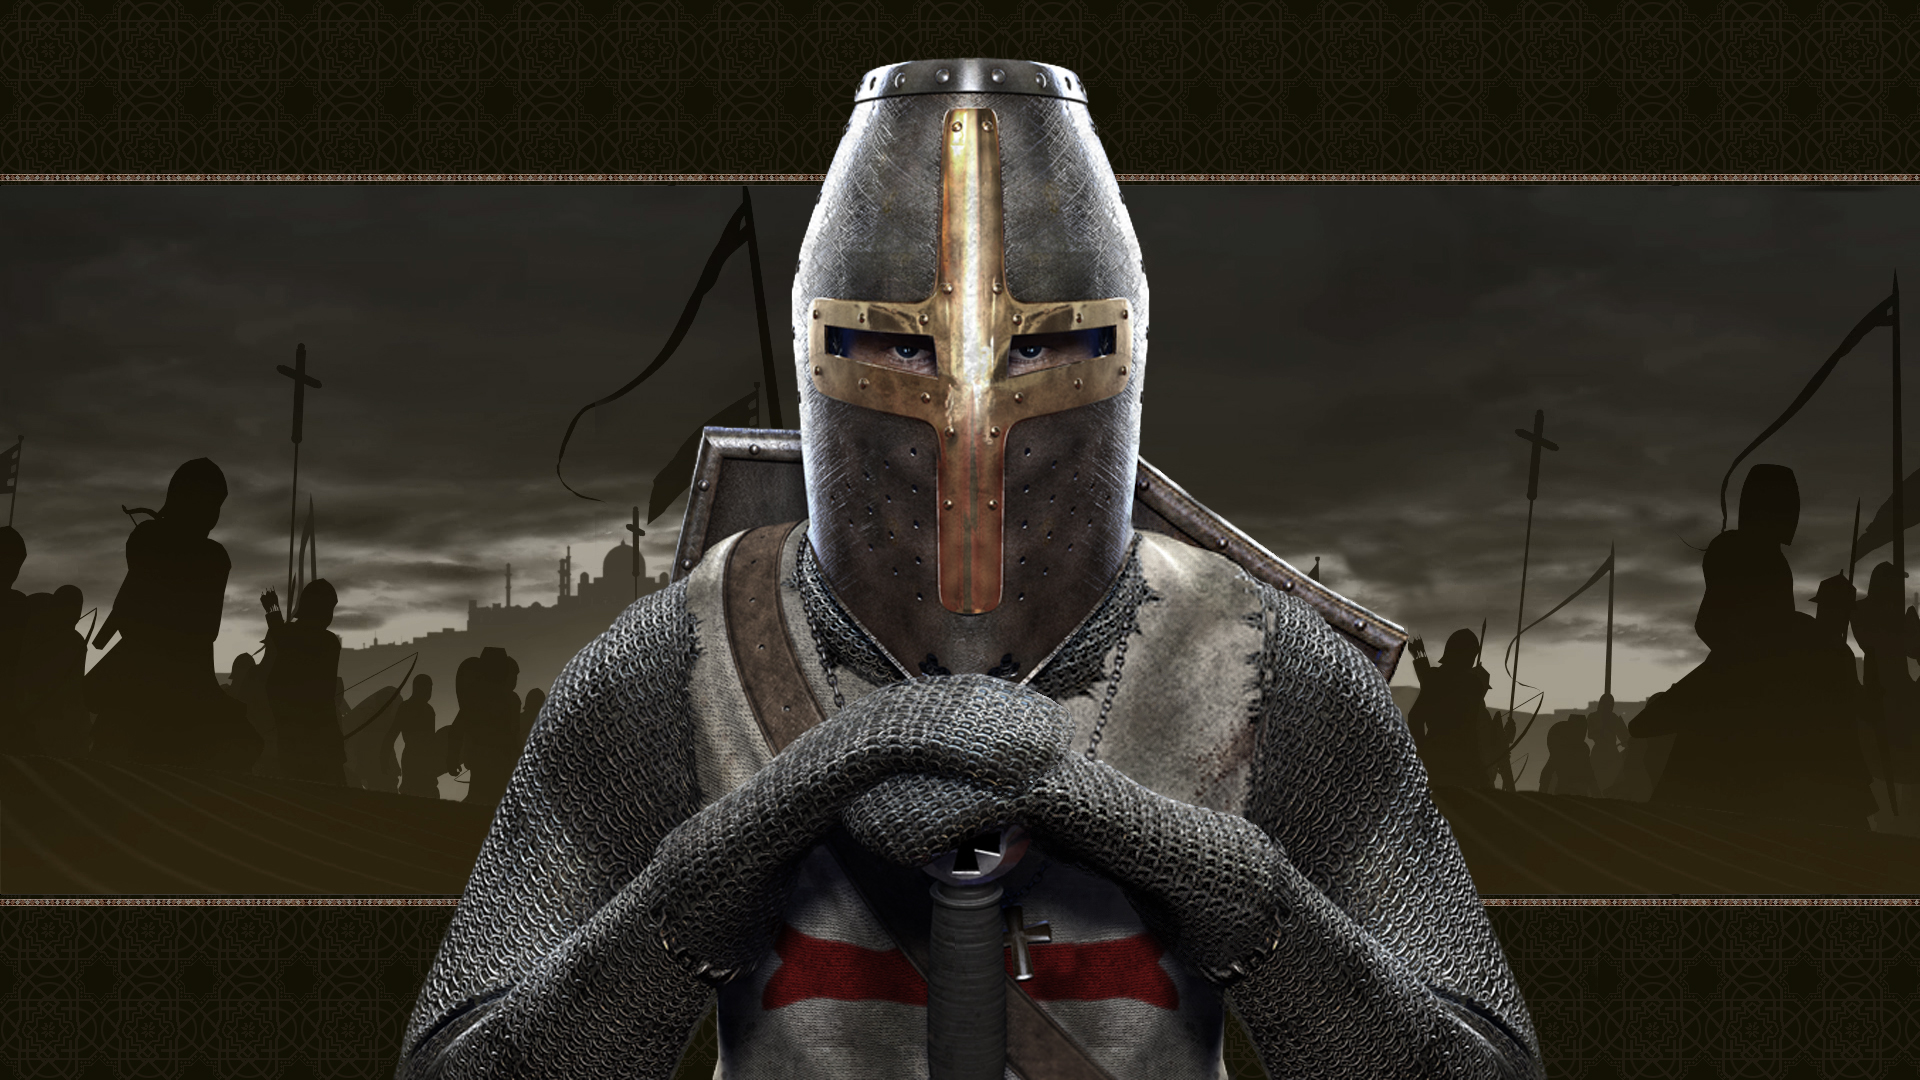 Crusader Knight Computer Wallpapers Desktop Backgrounds 1920x1080 1920x1080